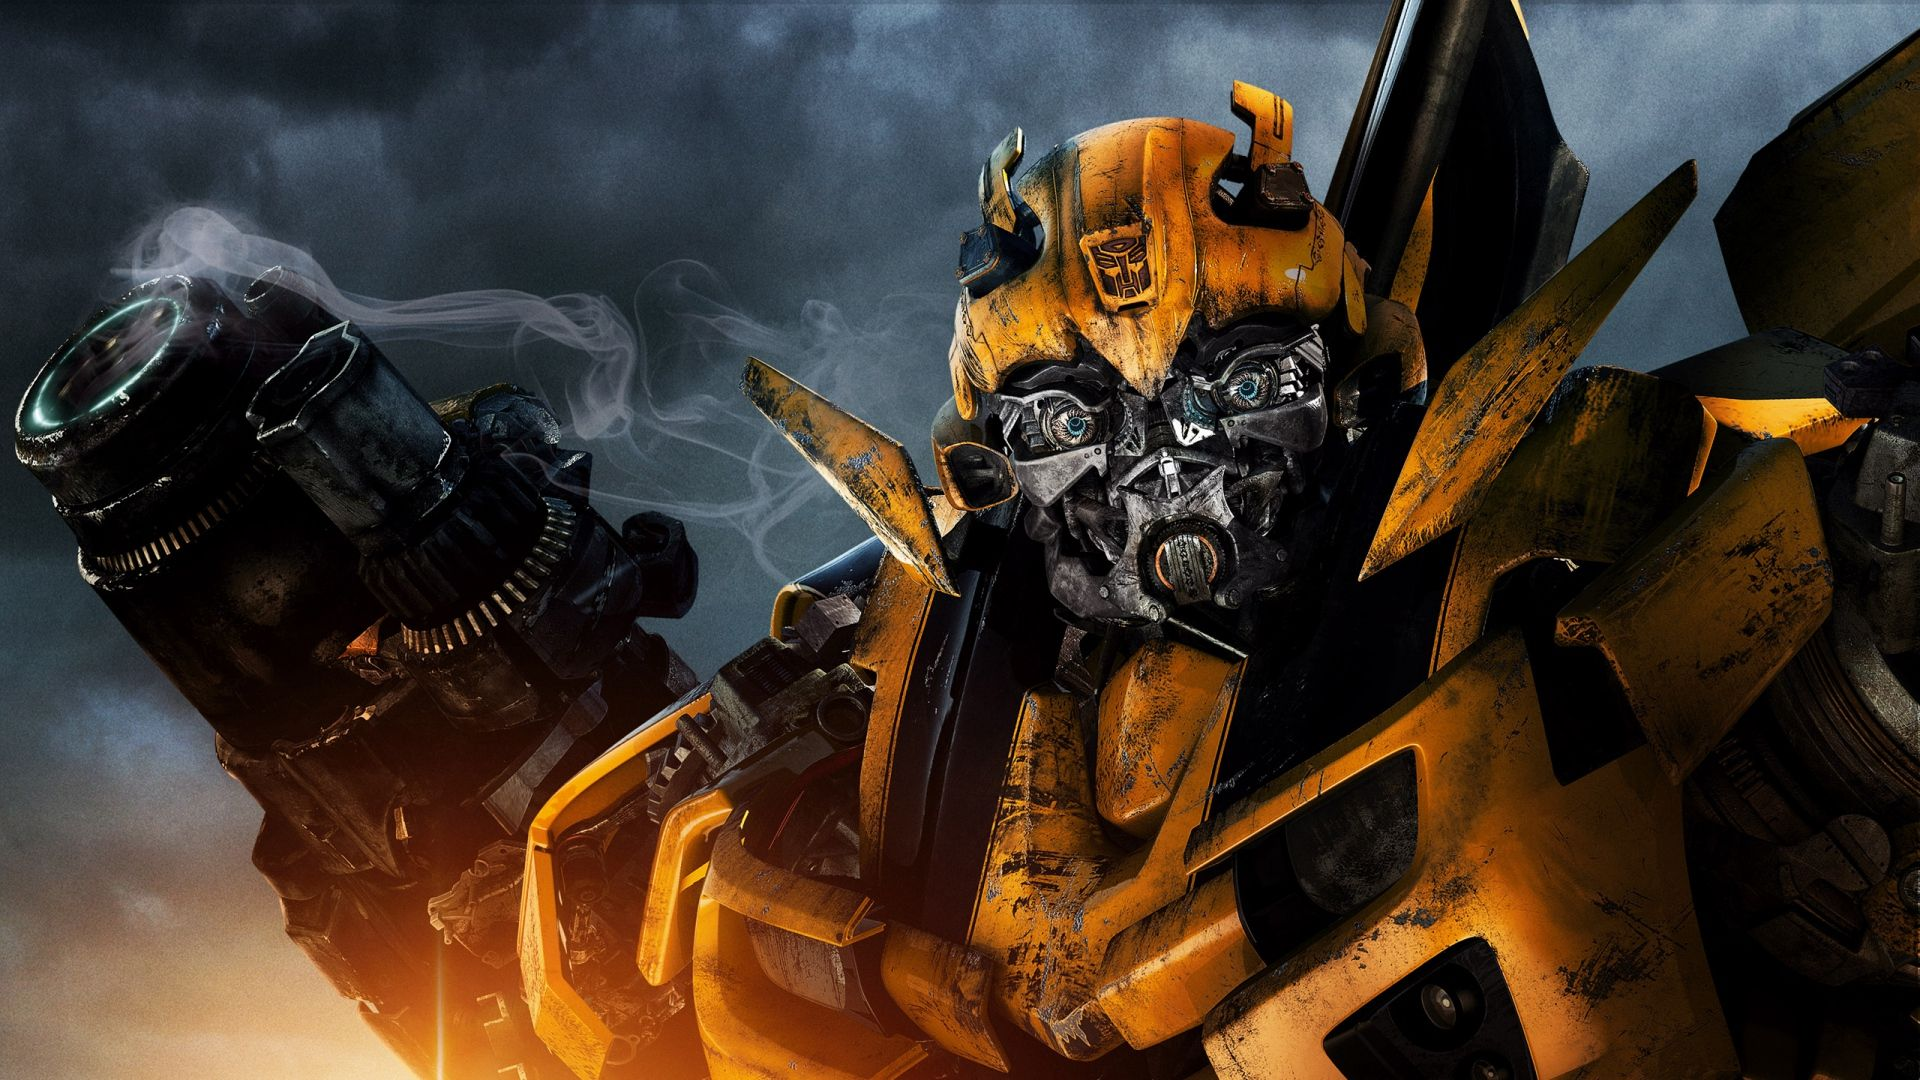 1920x1080 wallpaper transformers bumblebee robot